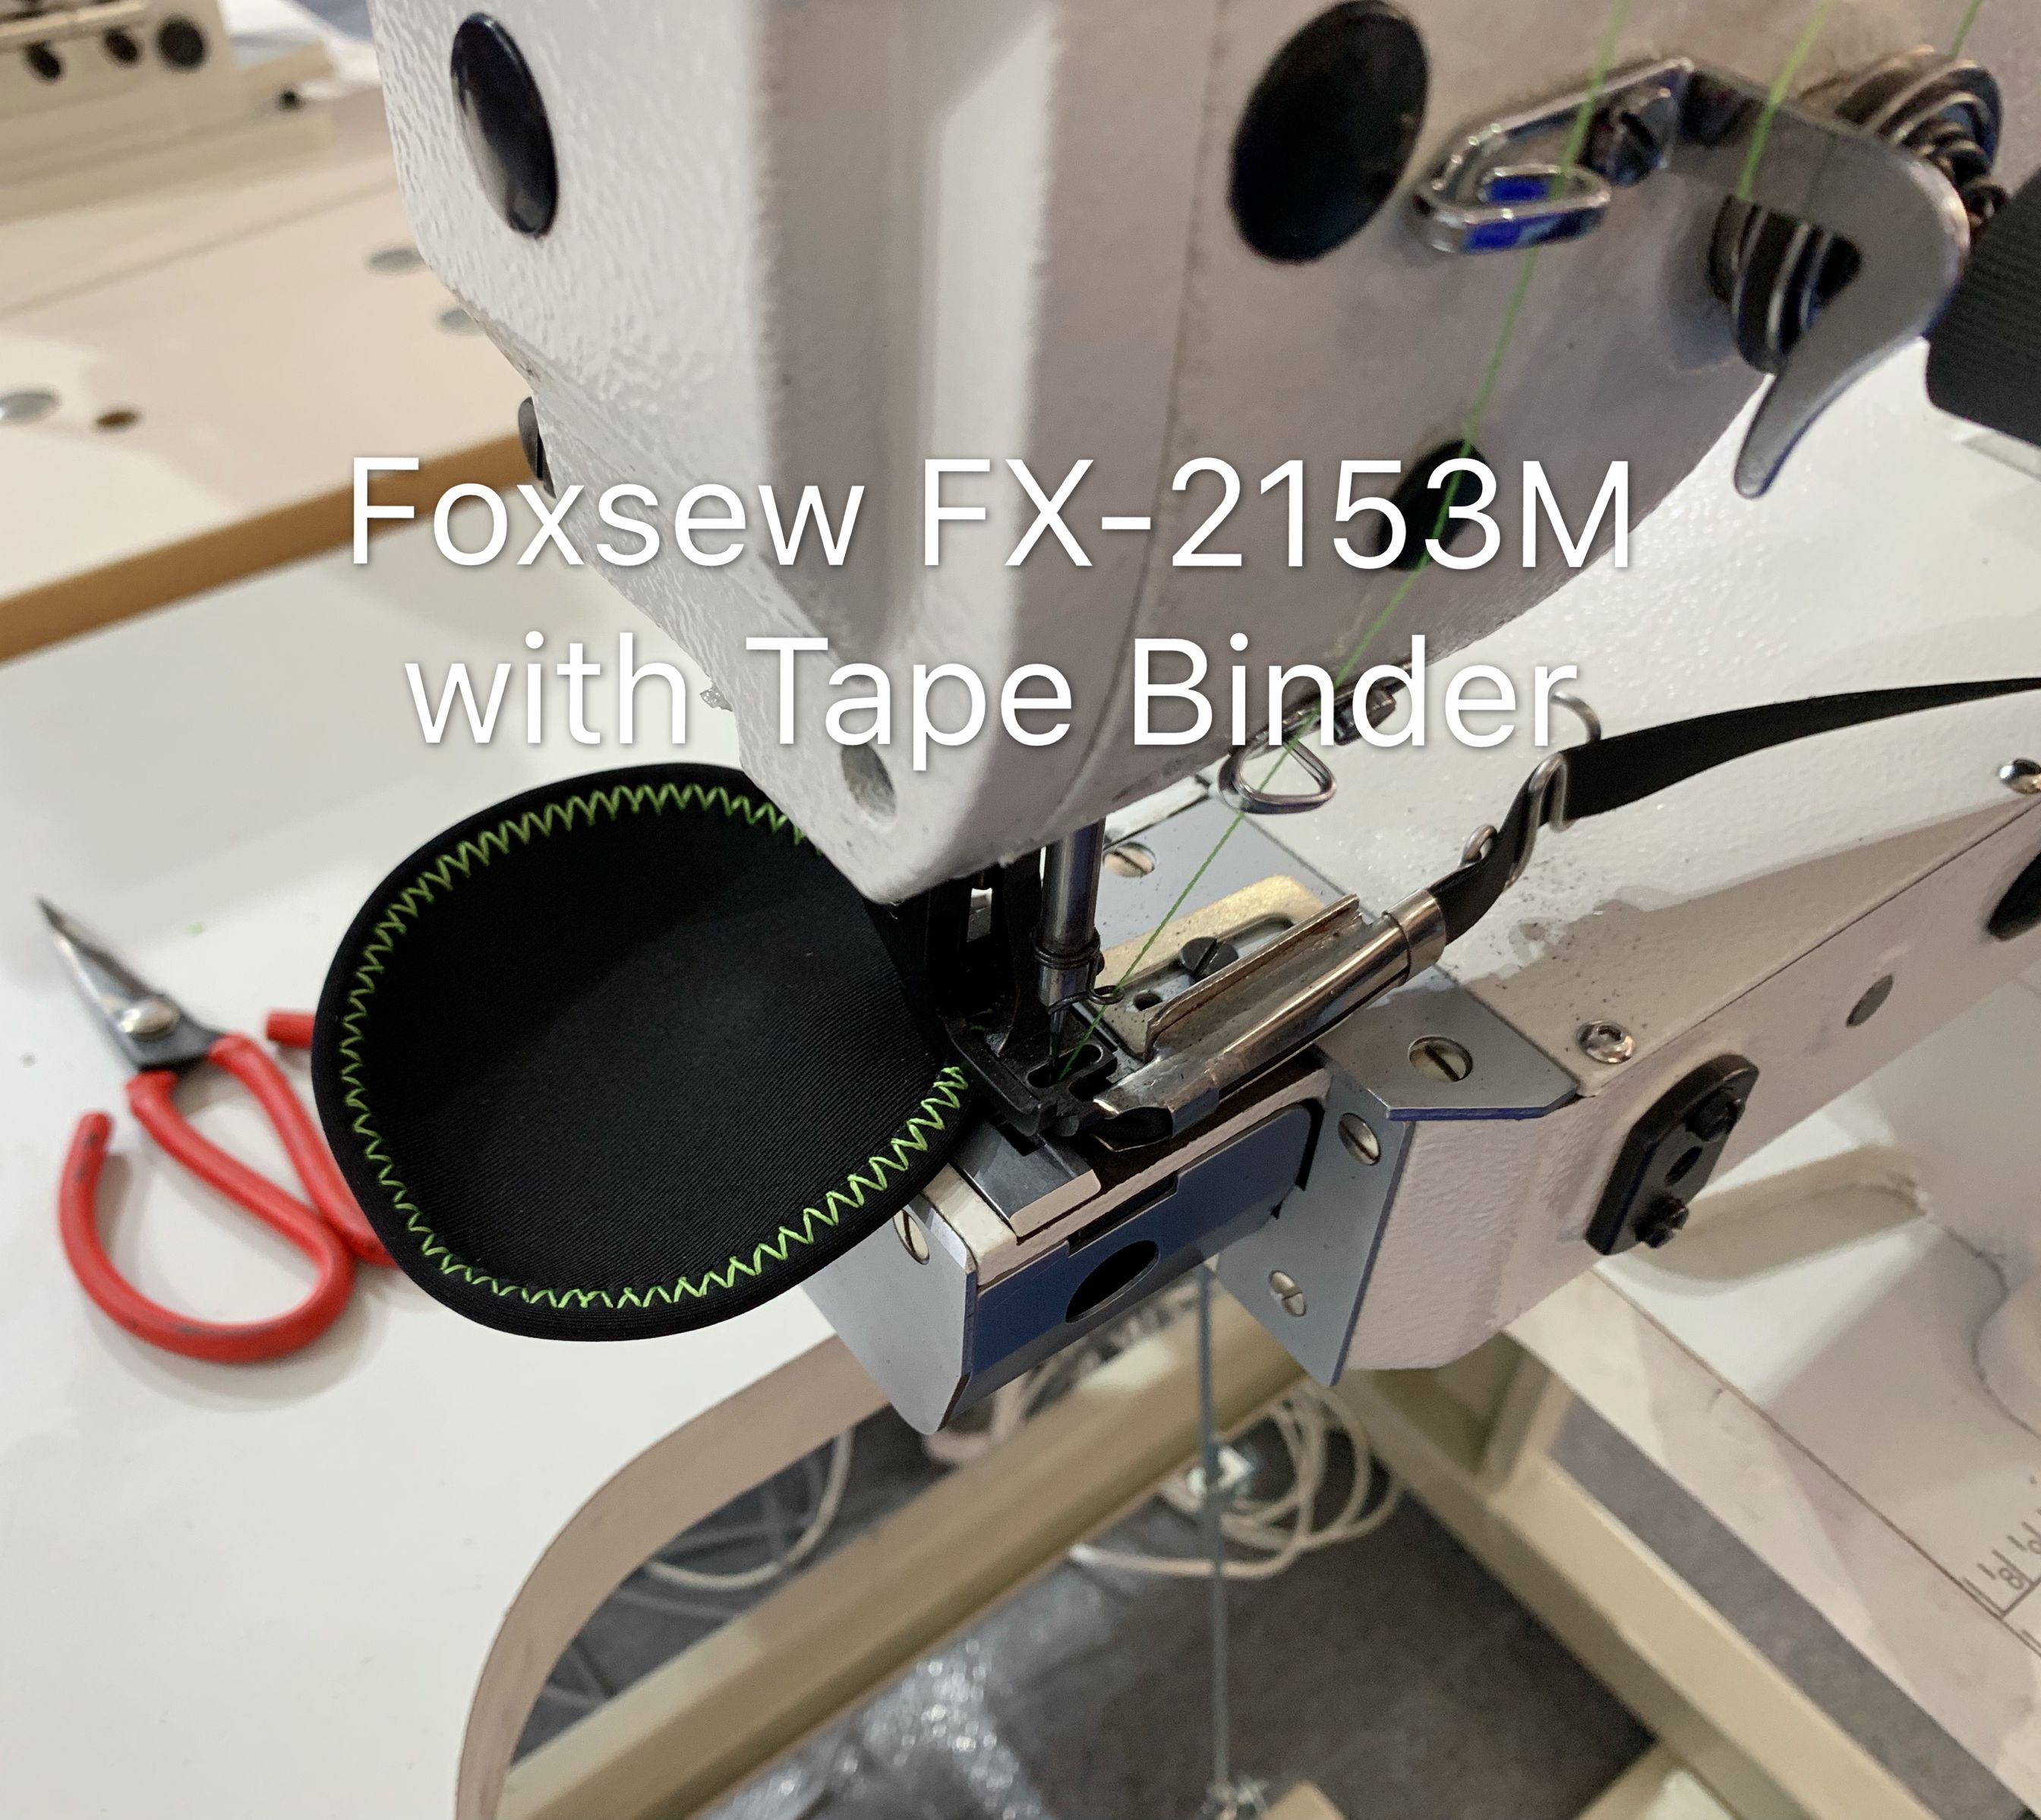 Direct Drive Cylinder Bed Zigzag Sewing Machine for Tape Binding on Sports Shoes Foxsew FX-2153M-01